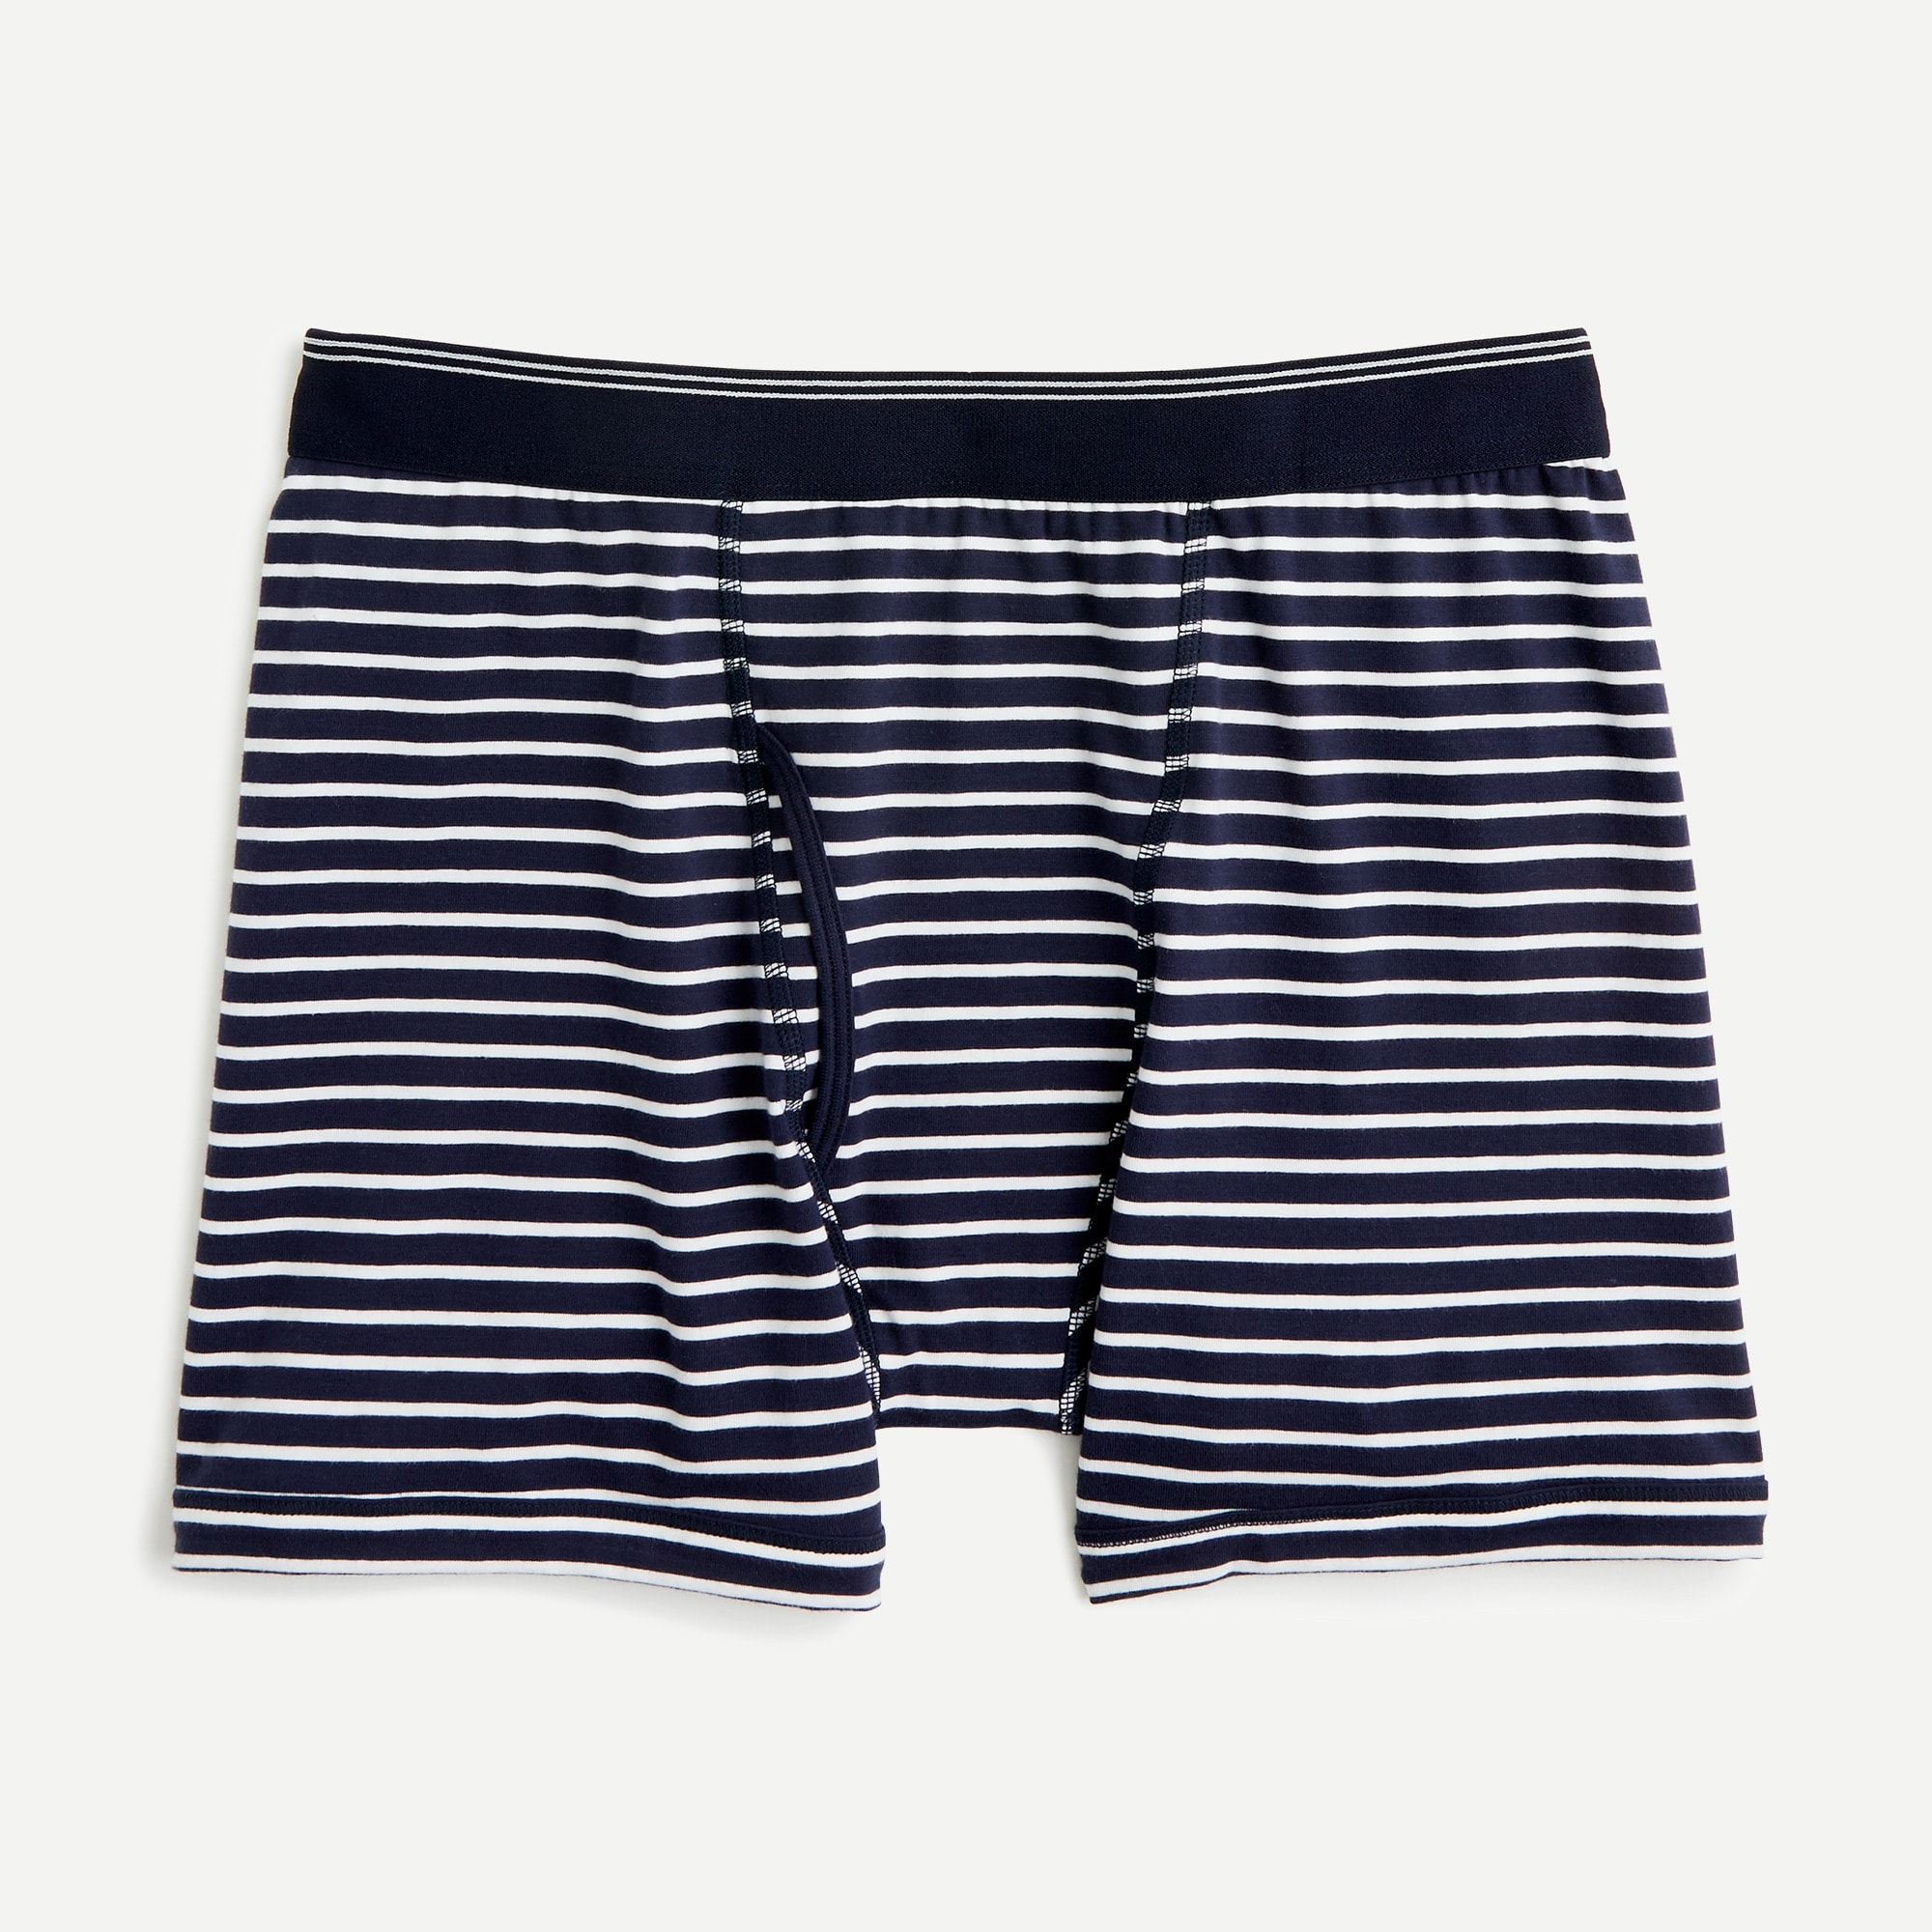 mens Stretch navy striped boxer briefs